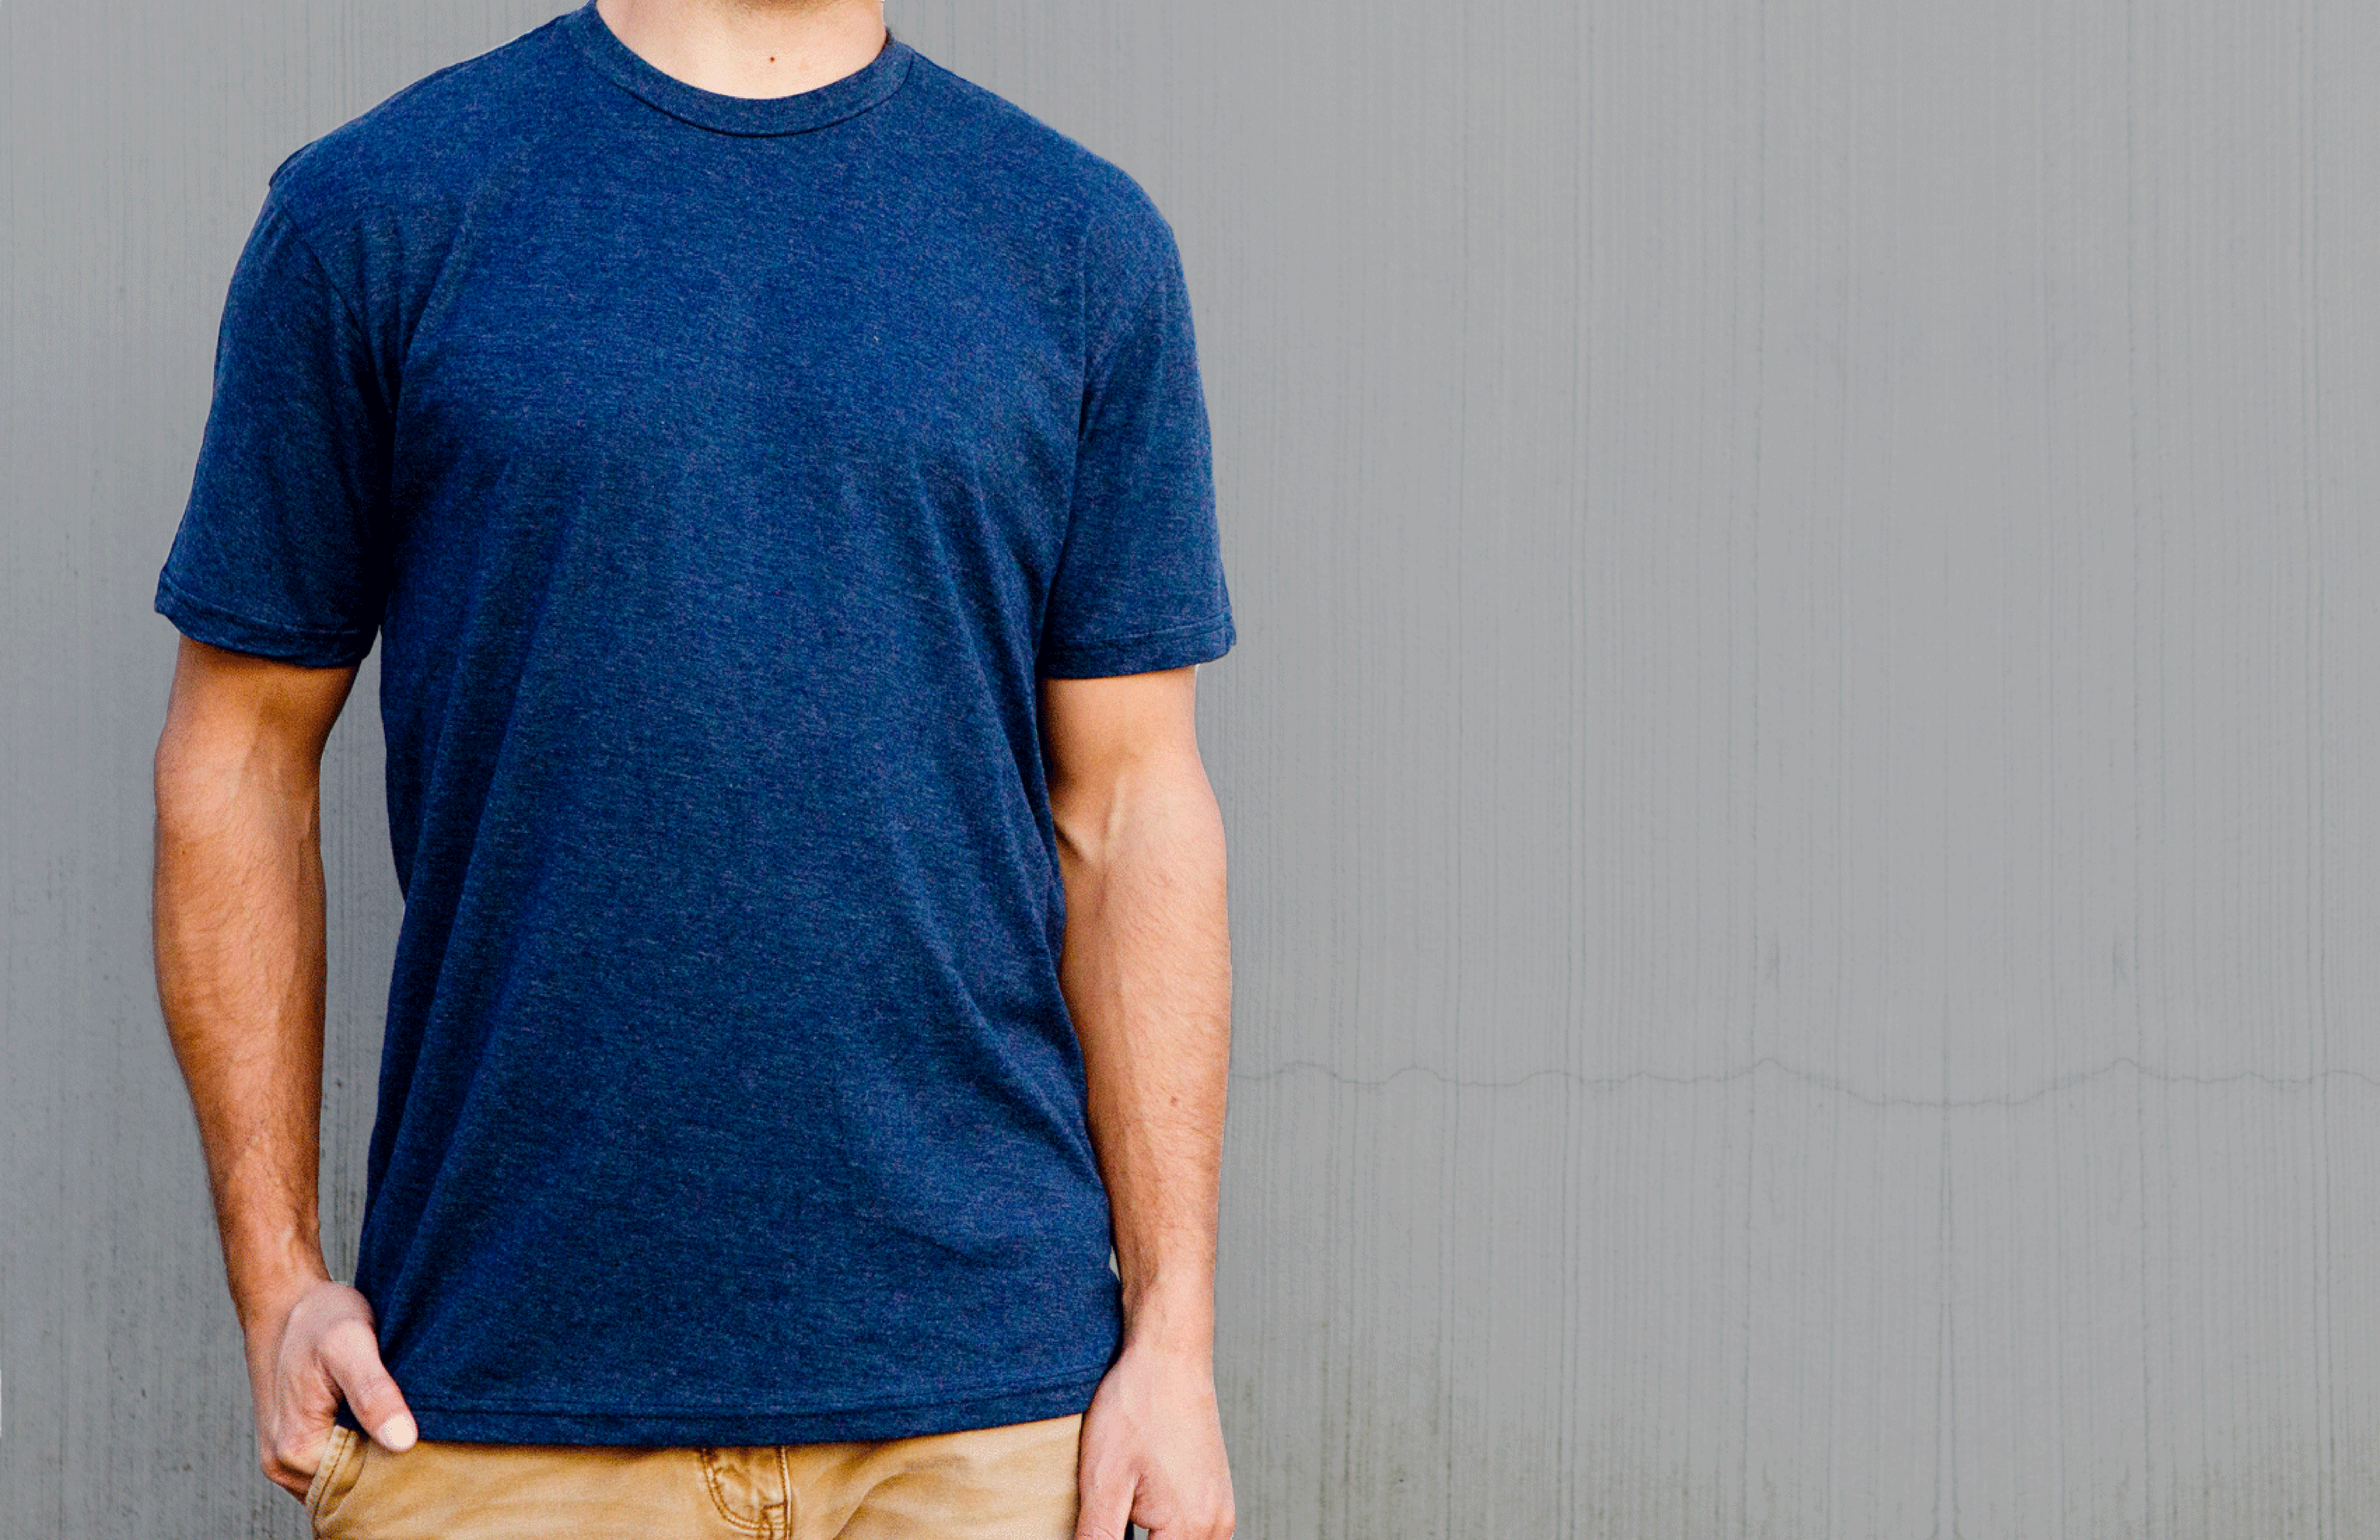 A brand new way to buy premium t-shirts for significantly less than you're used to.